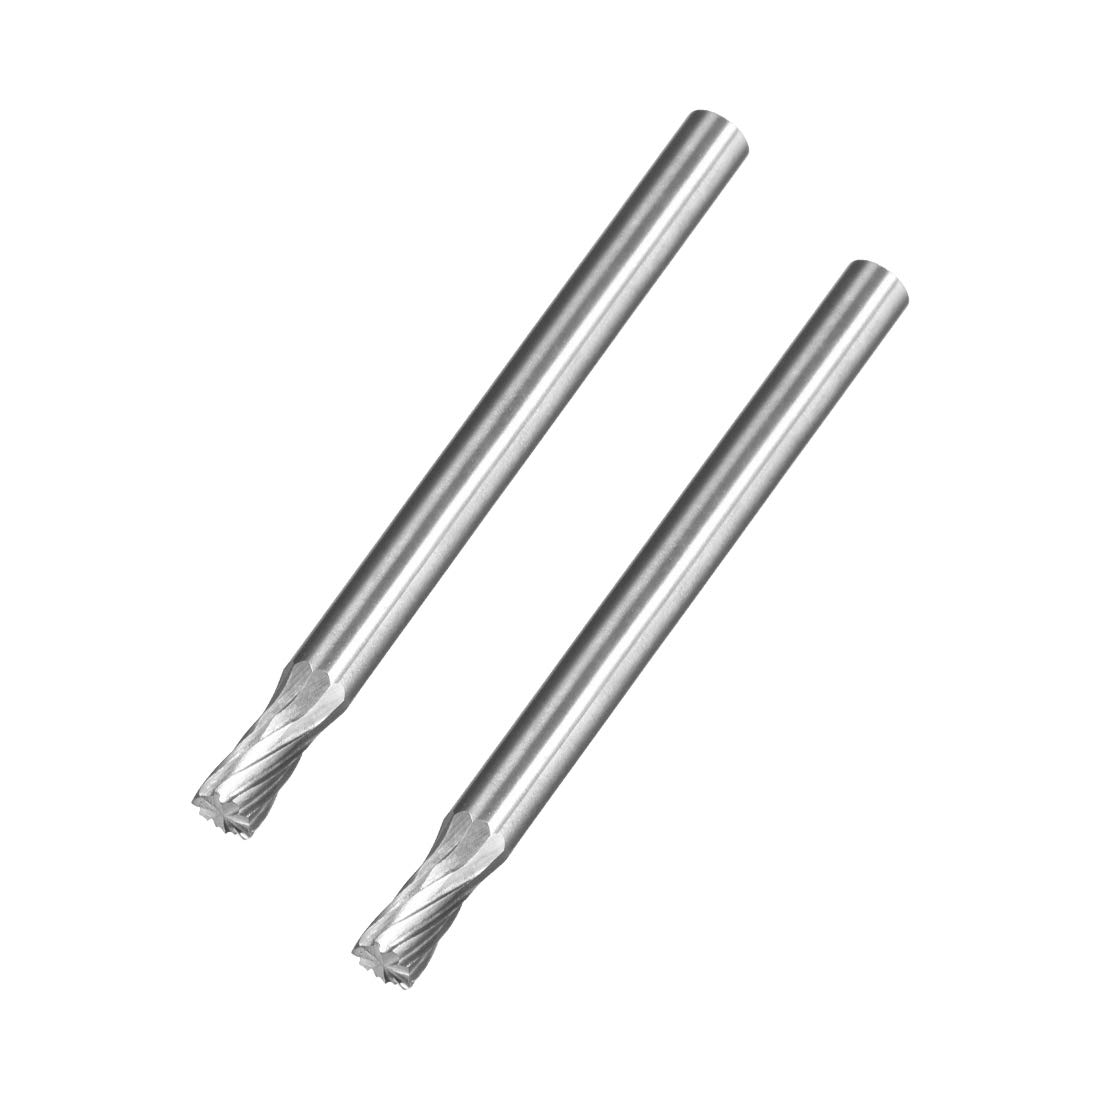 for Die Grinder Drill Hard Metal Carving Polishing Engraving uxcell Tungsten Carbide Rotary Files 1//8 Shank 2pcs Single Cut Top Toothed Cylinder Shape Rotary Burrs Tool 3mm Dia